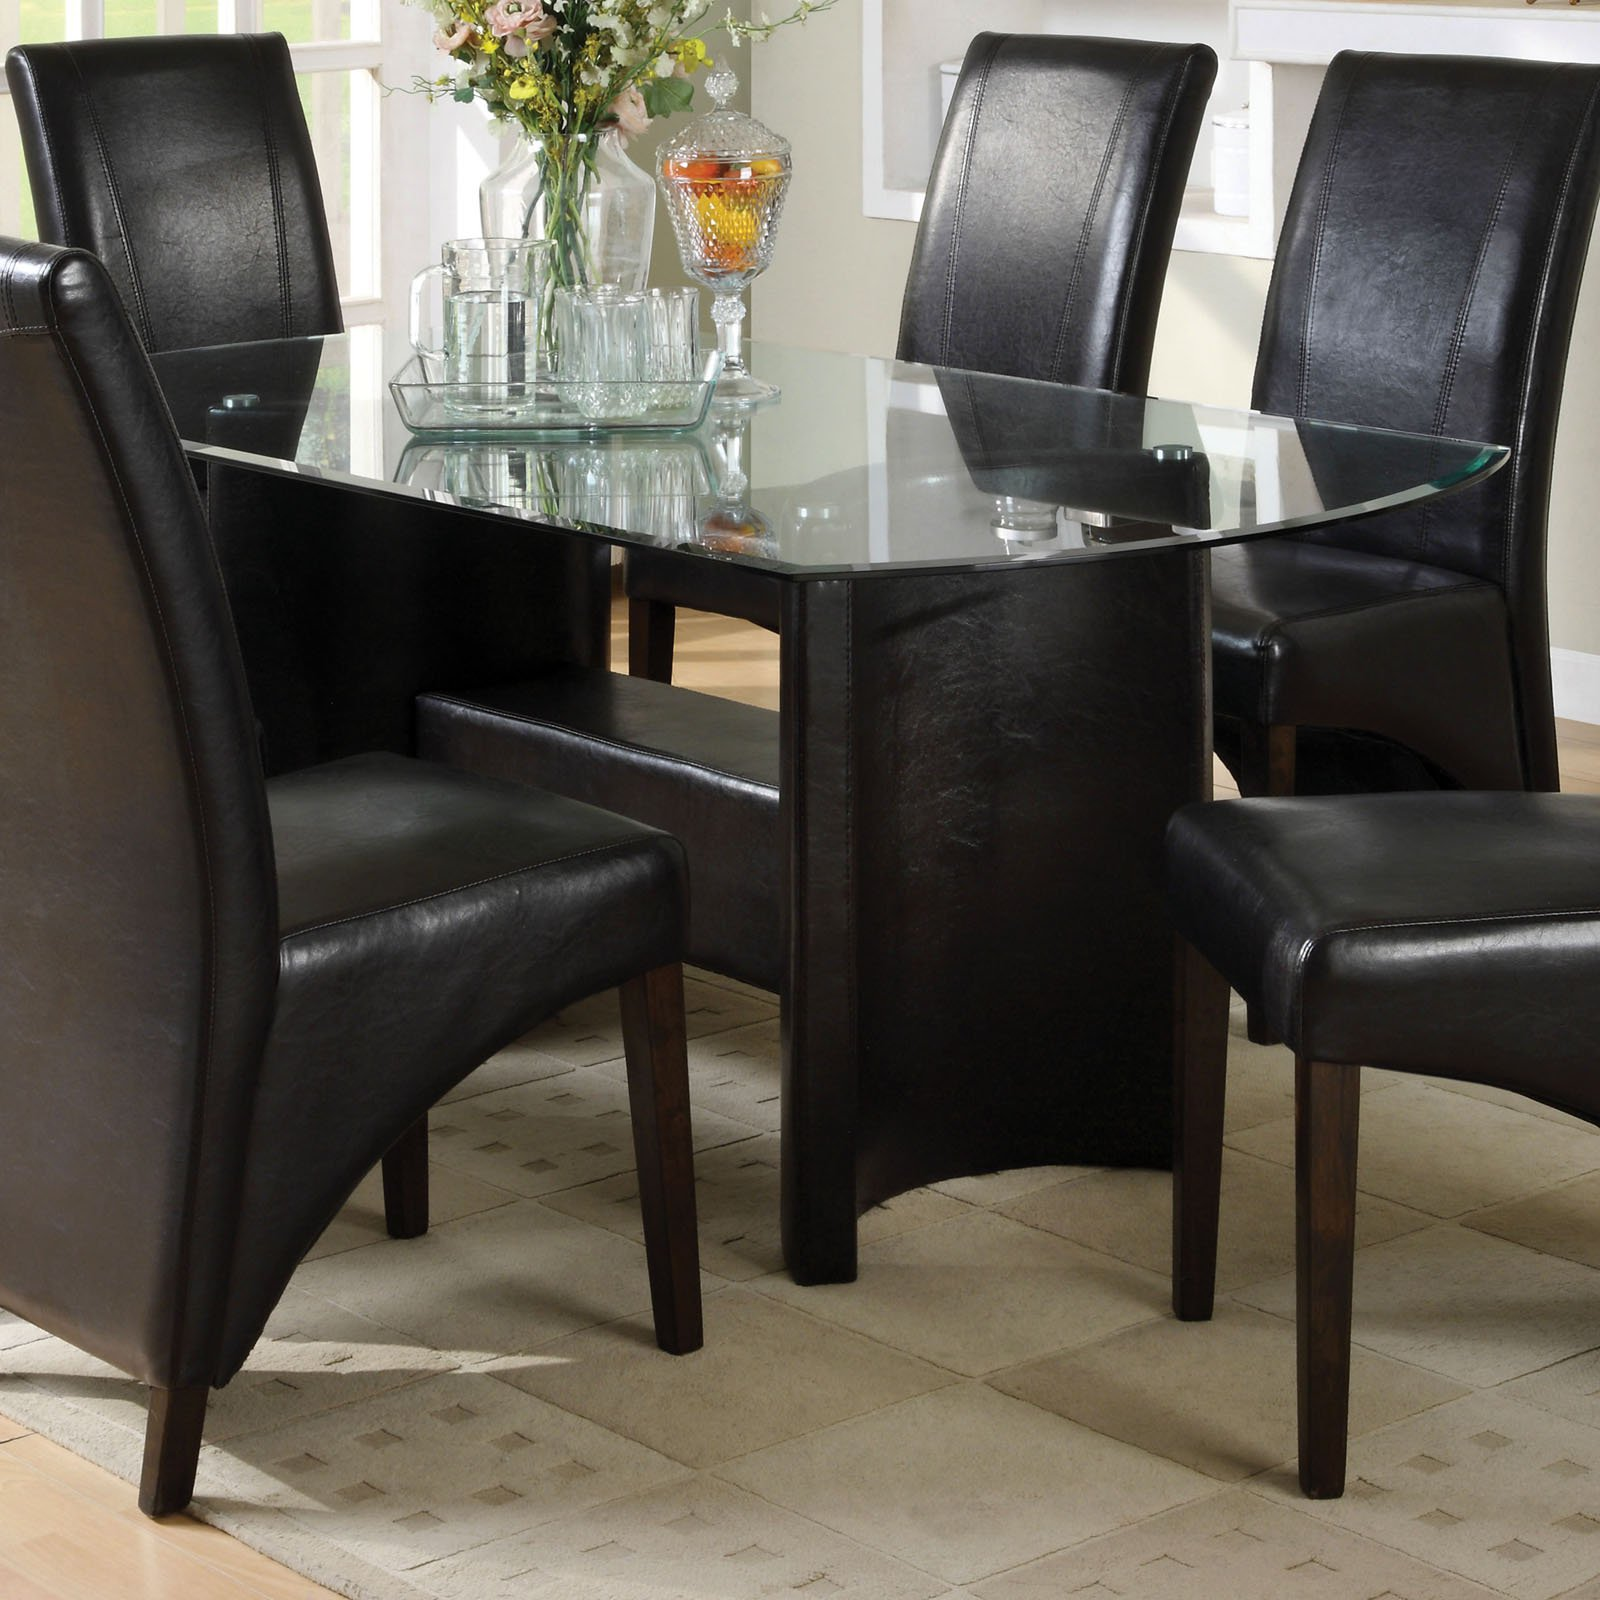 Furniture of America Briana Oval Dining Table